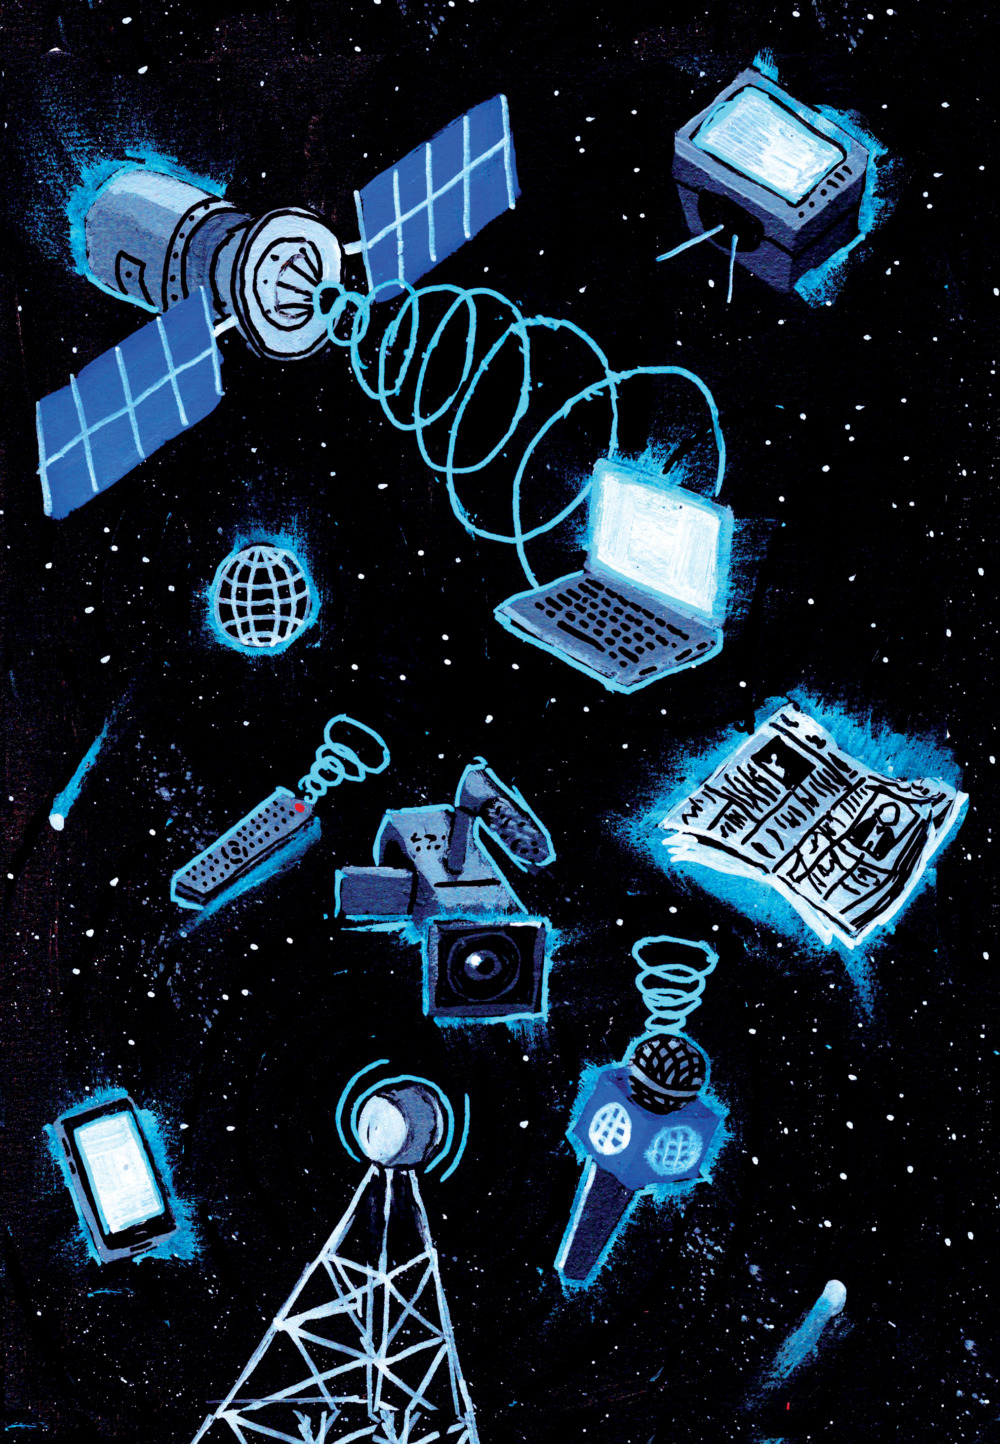 Various laptops, TV sets, camcorders, microphones, smartphones, and newspapers float in space, a satellite beaming content onto all of them.